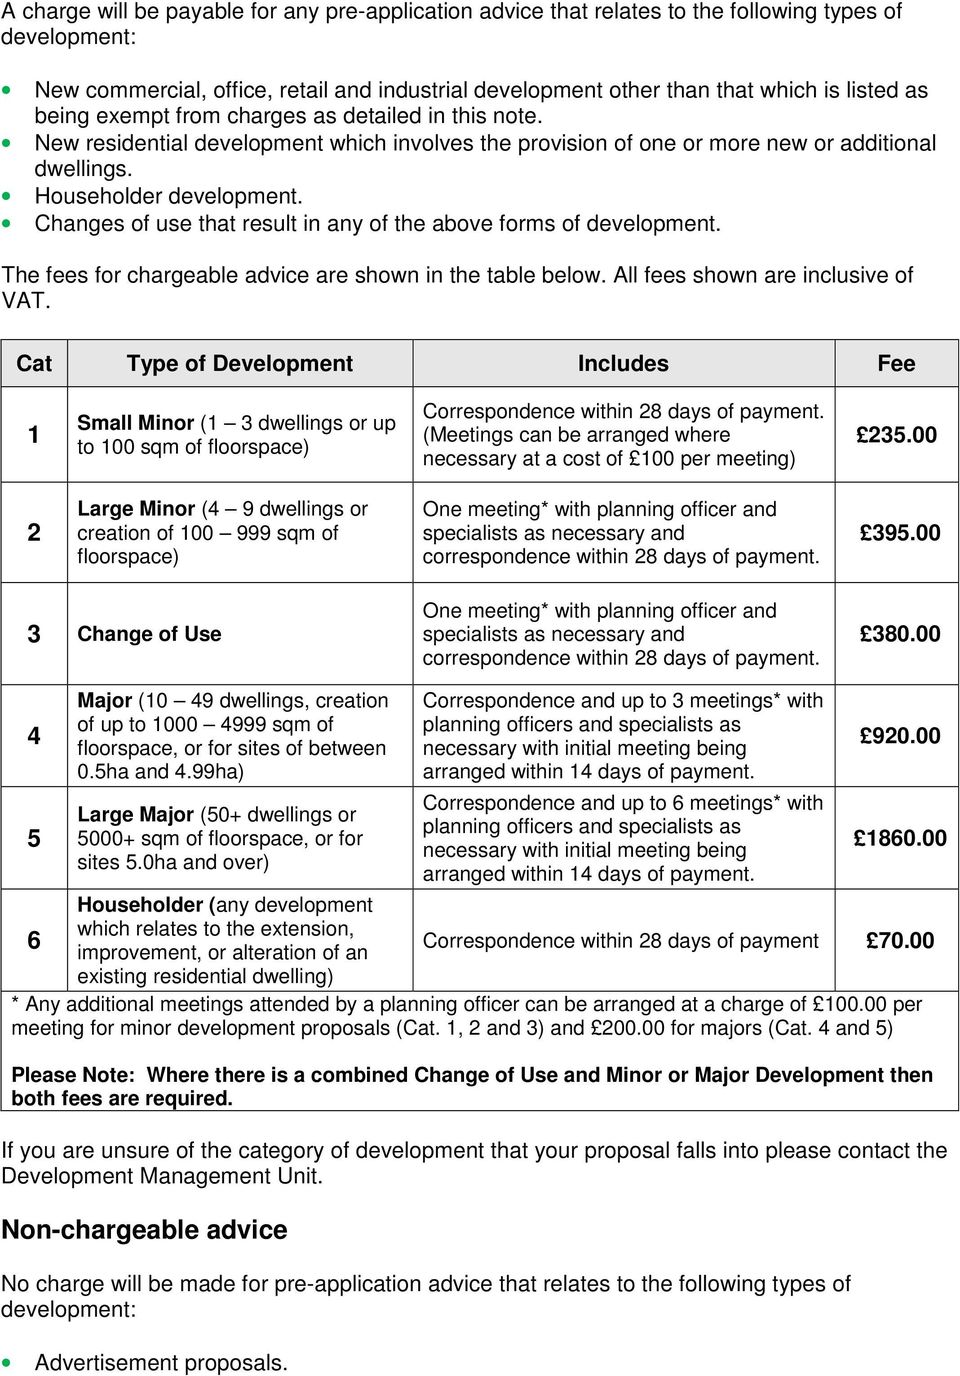 Changes of use that result in any of the above forms of development. The fees for chargeable advice are shown in the table below. All fees shown are inclusive of VAT.